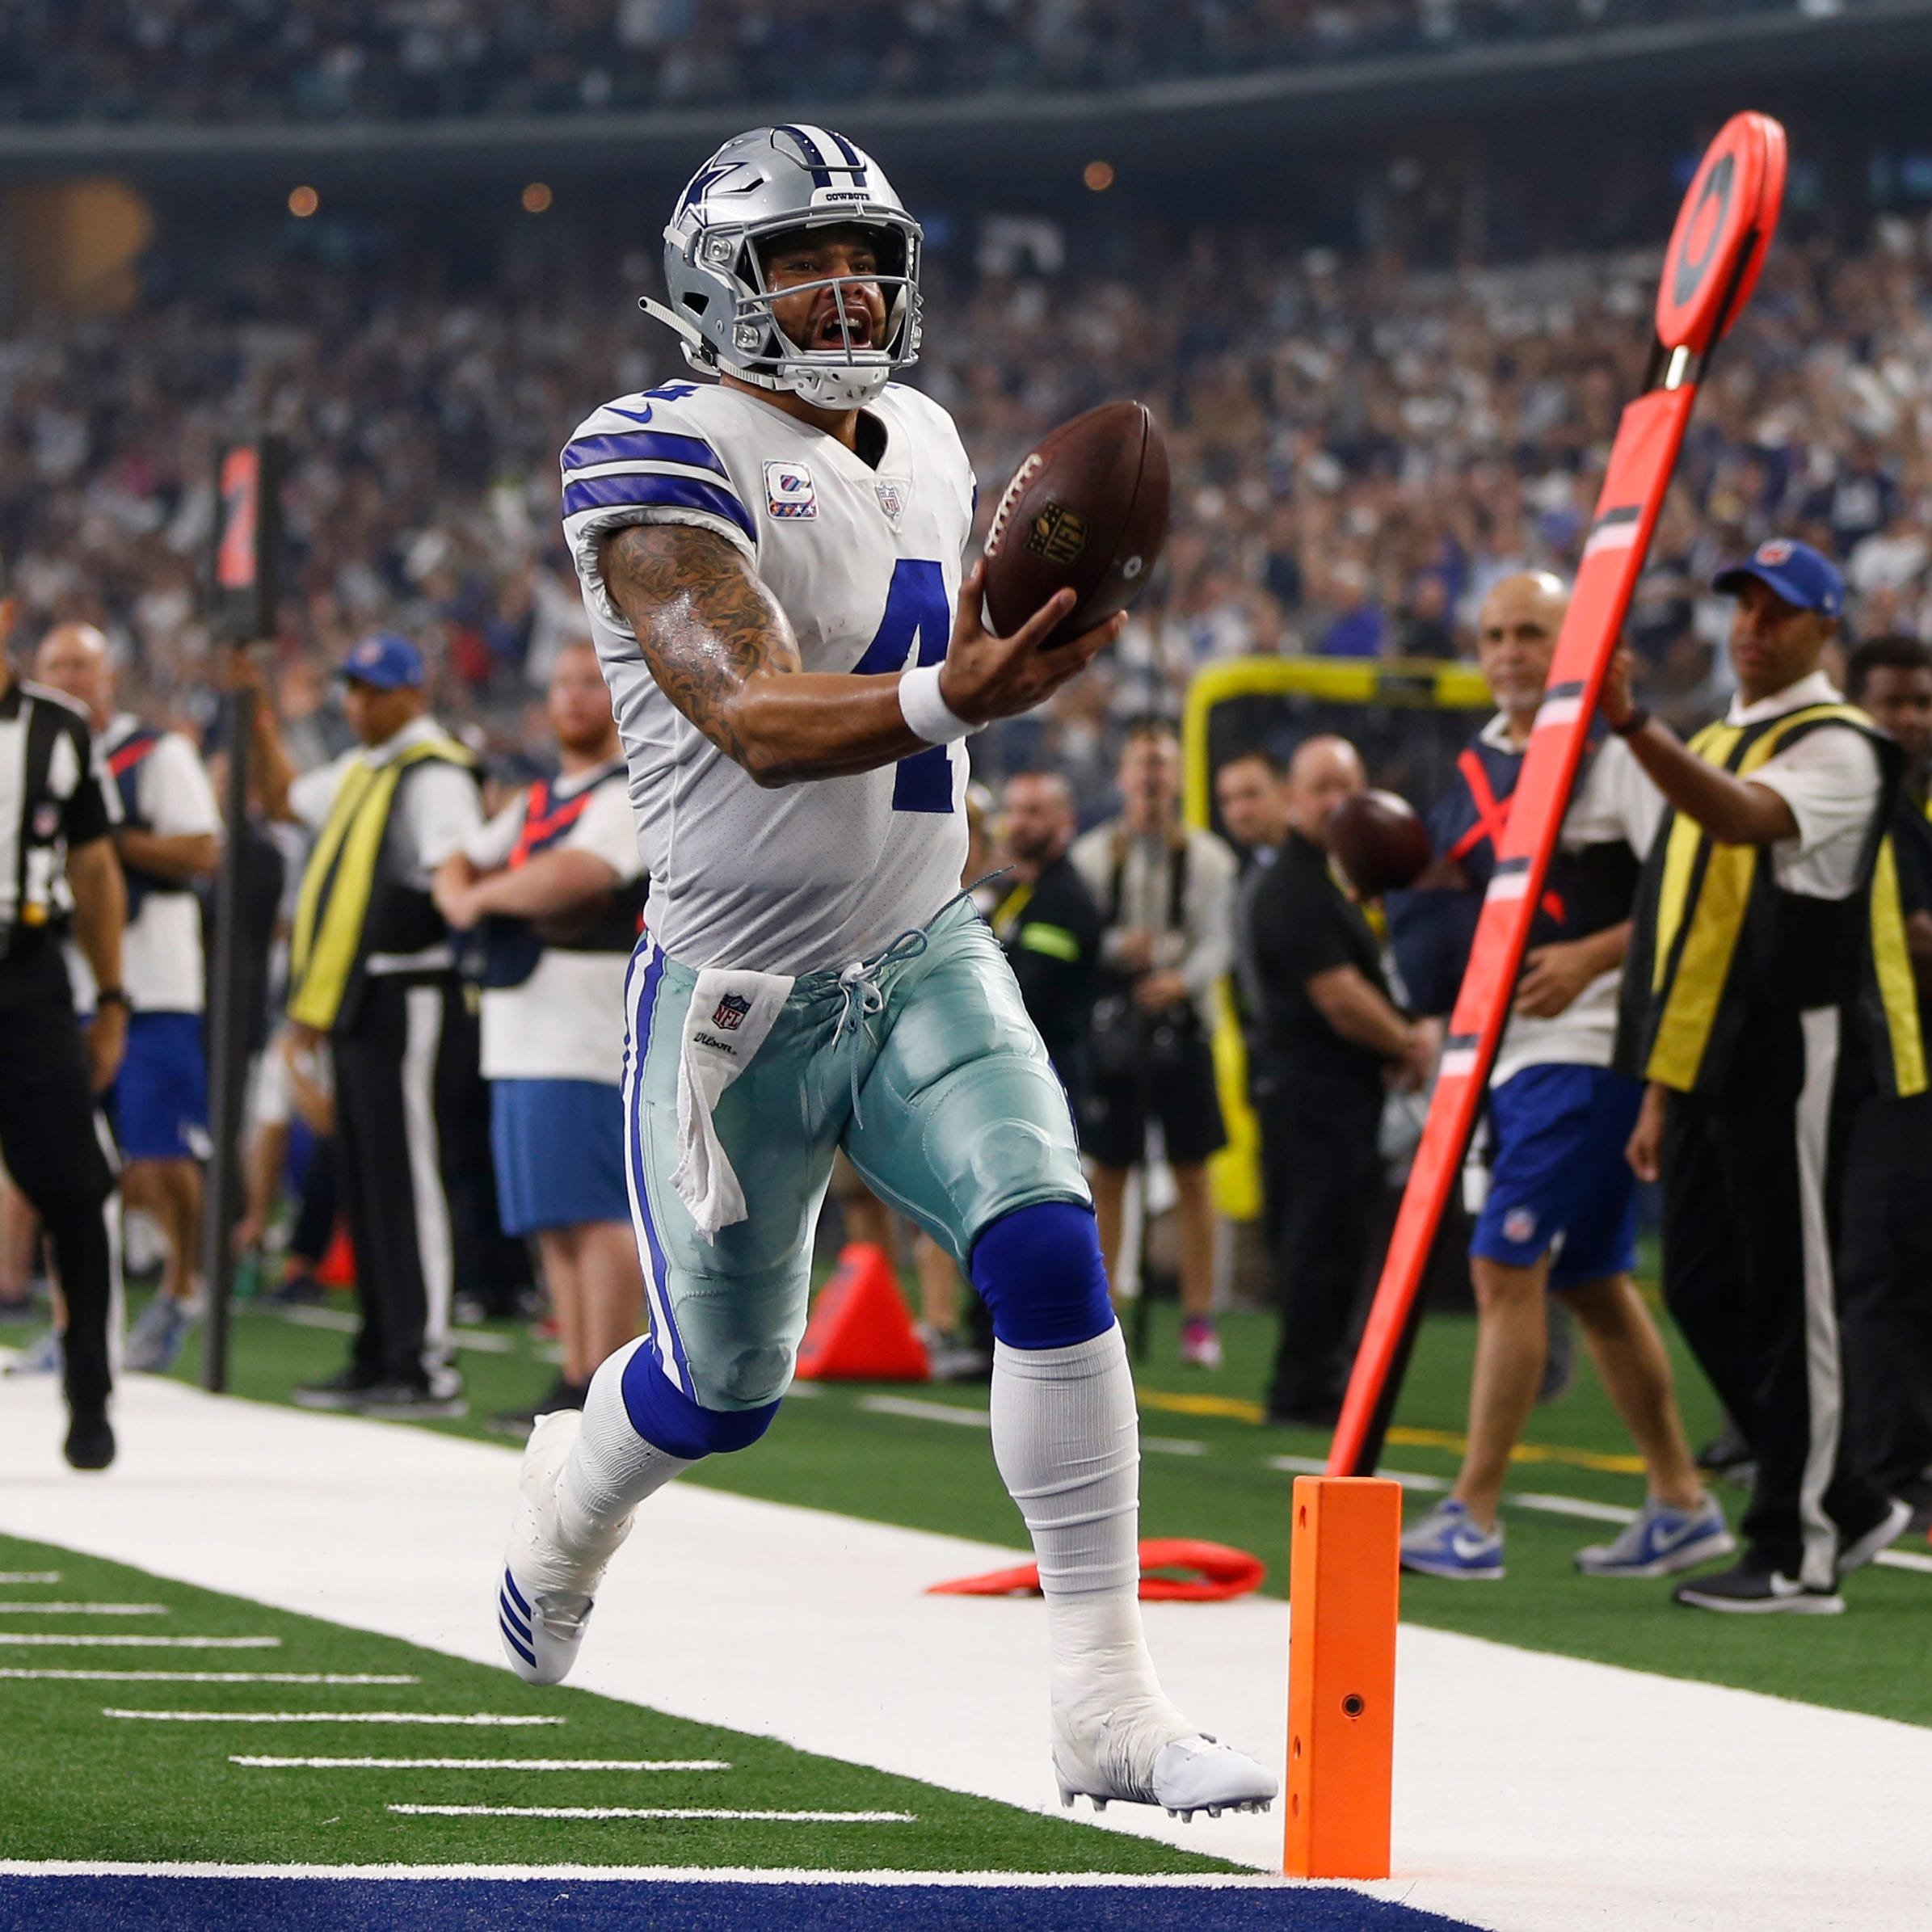 Newberry: Cowboys appear to realize they must score to find place among NFL's final four